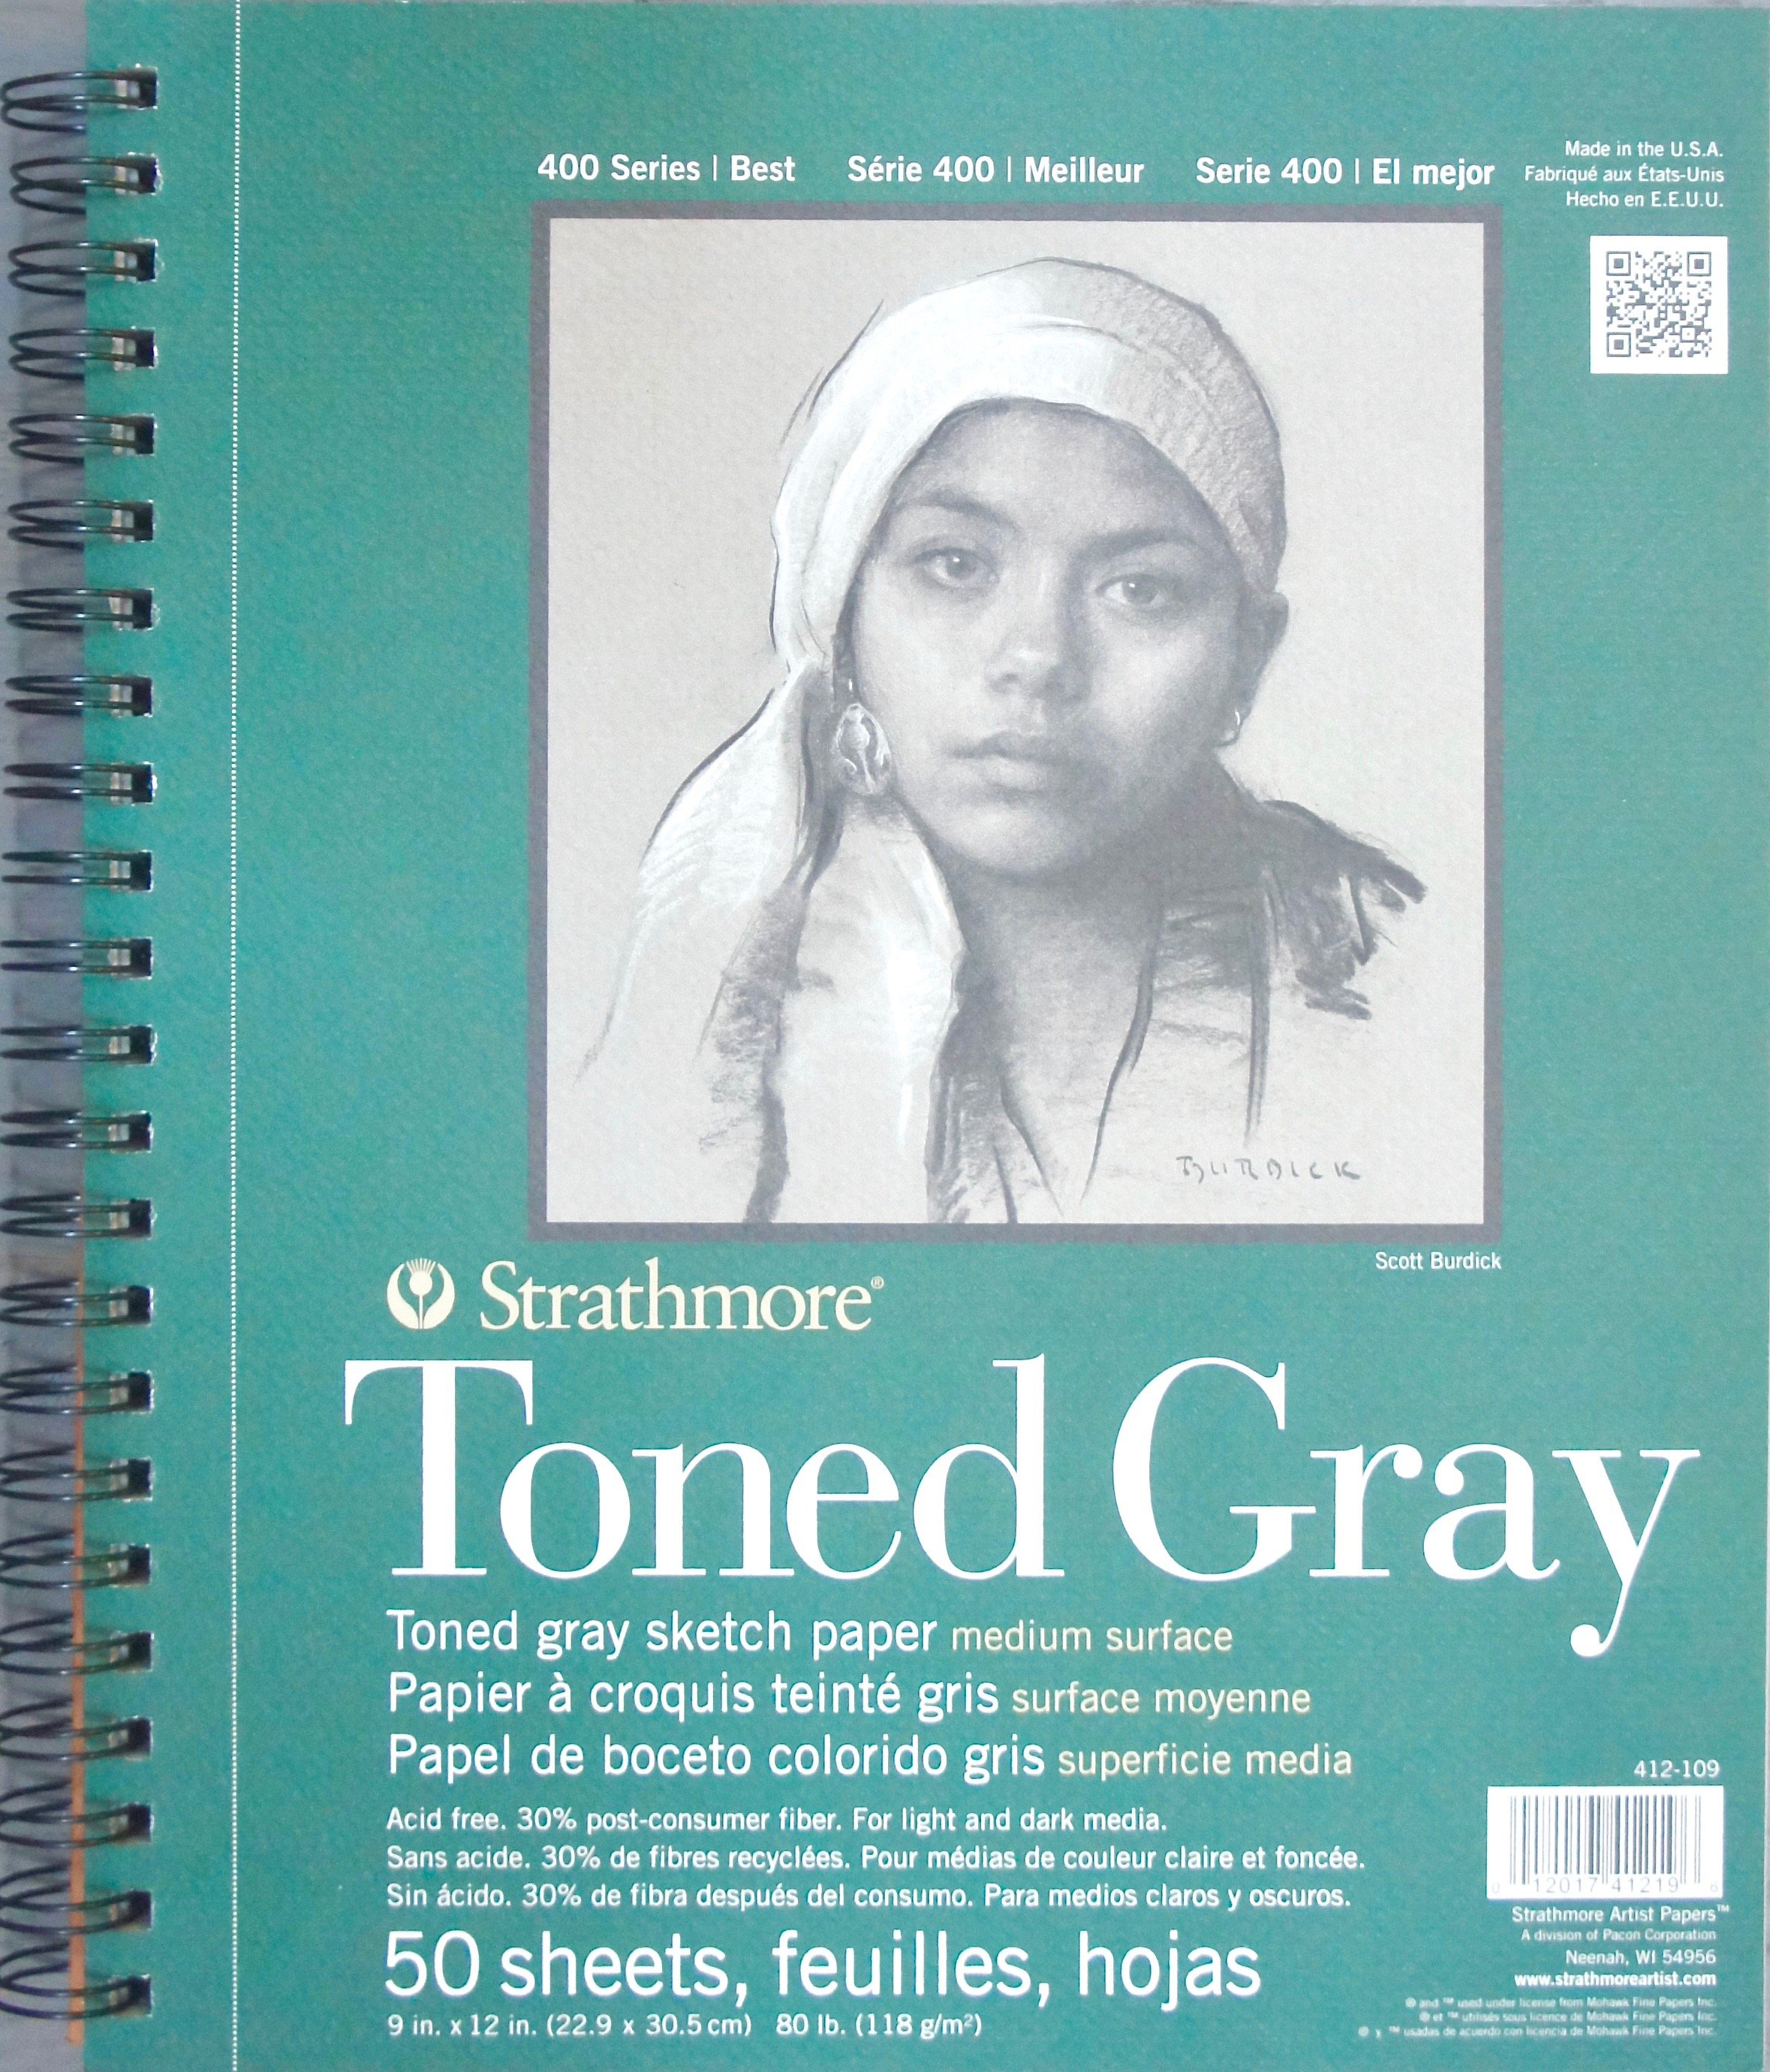 "Strathmore Series 400 Toned Gray Medium Surface Pad 9""x12"""